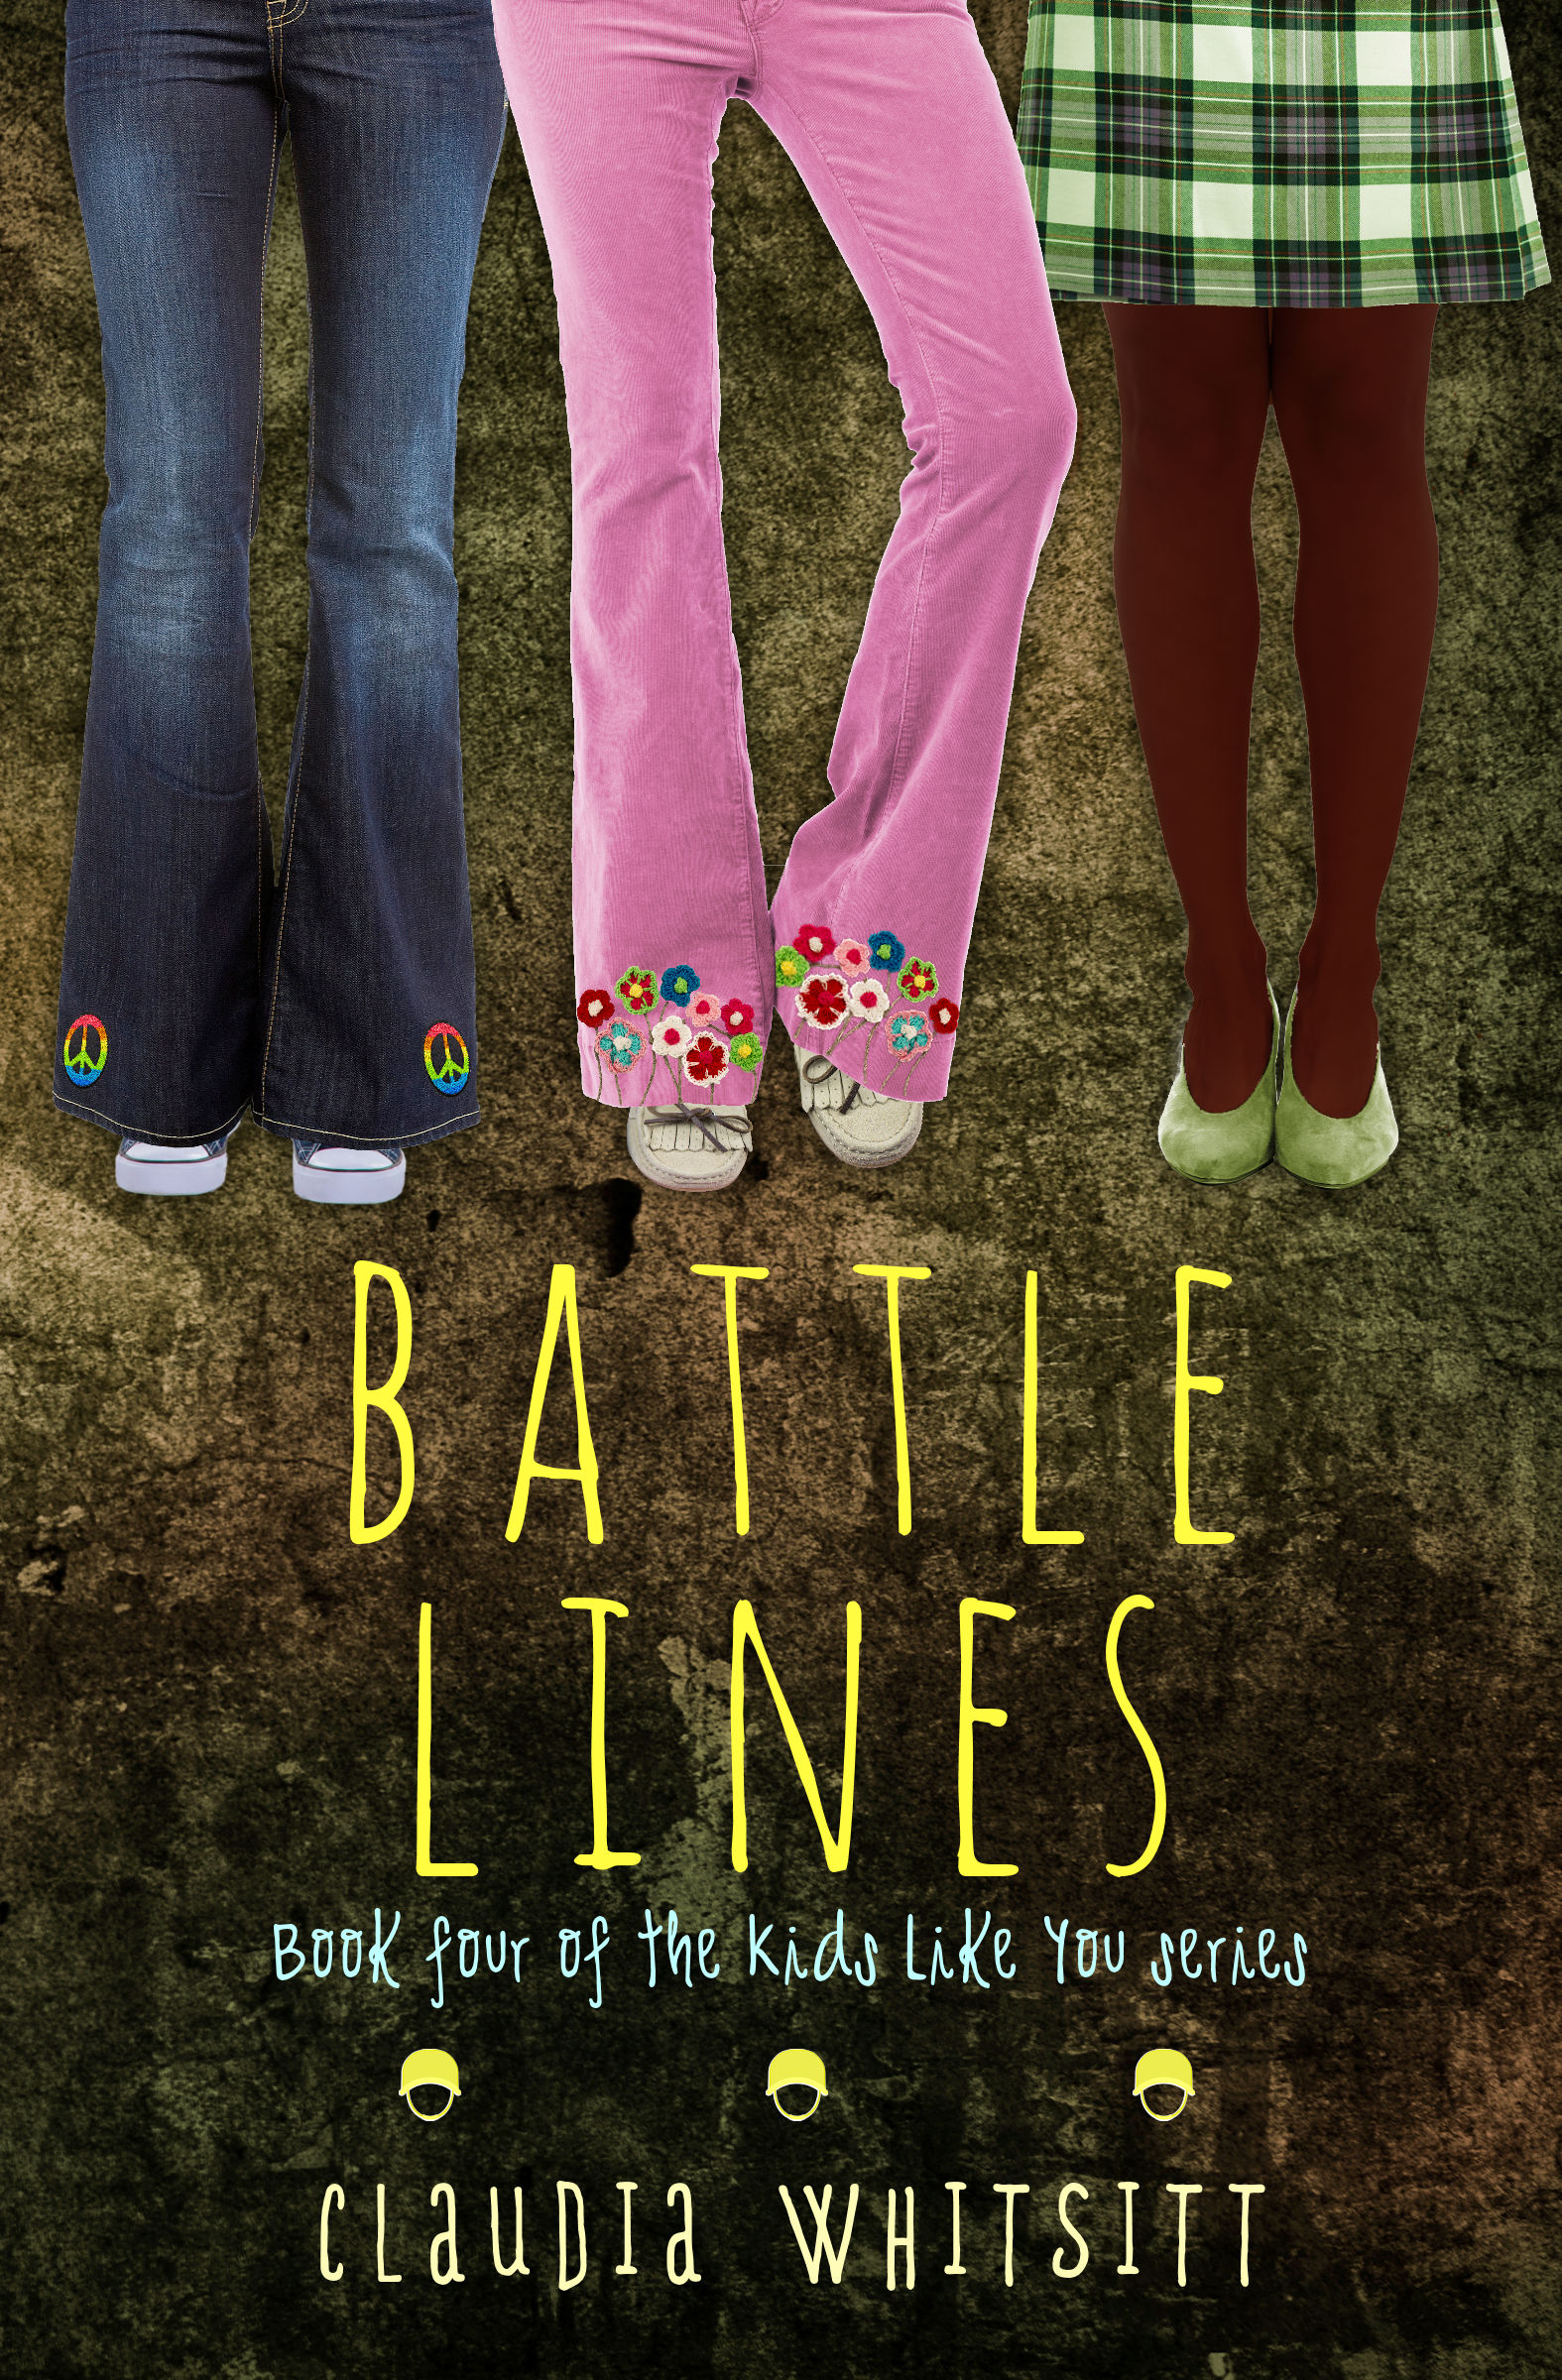 BRAND NEW INSTALLMENT IN THE KIDS LIKE YOU SERIES - BOOK 4